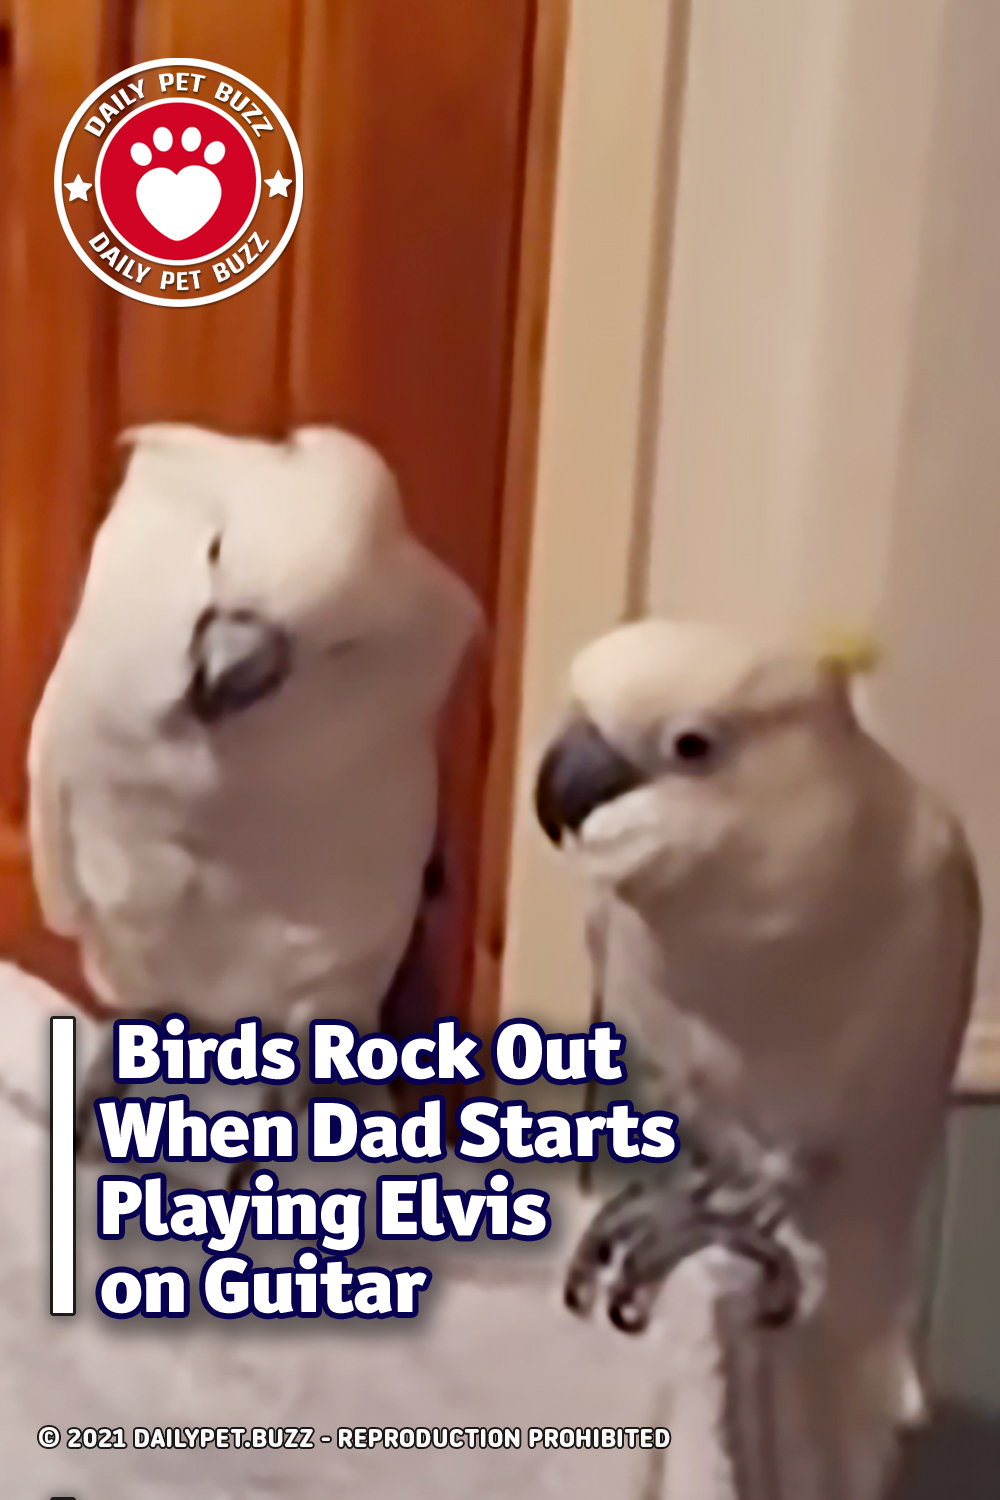 Birds Rock Out When Dad Starts Playing Elvis on Guitar